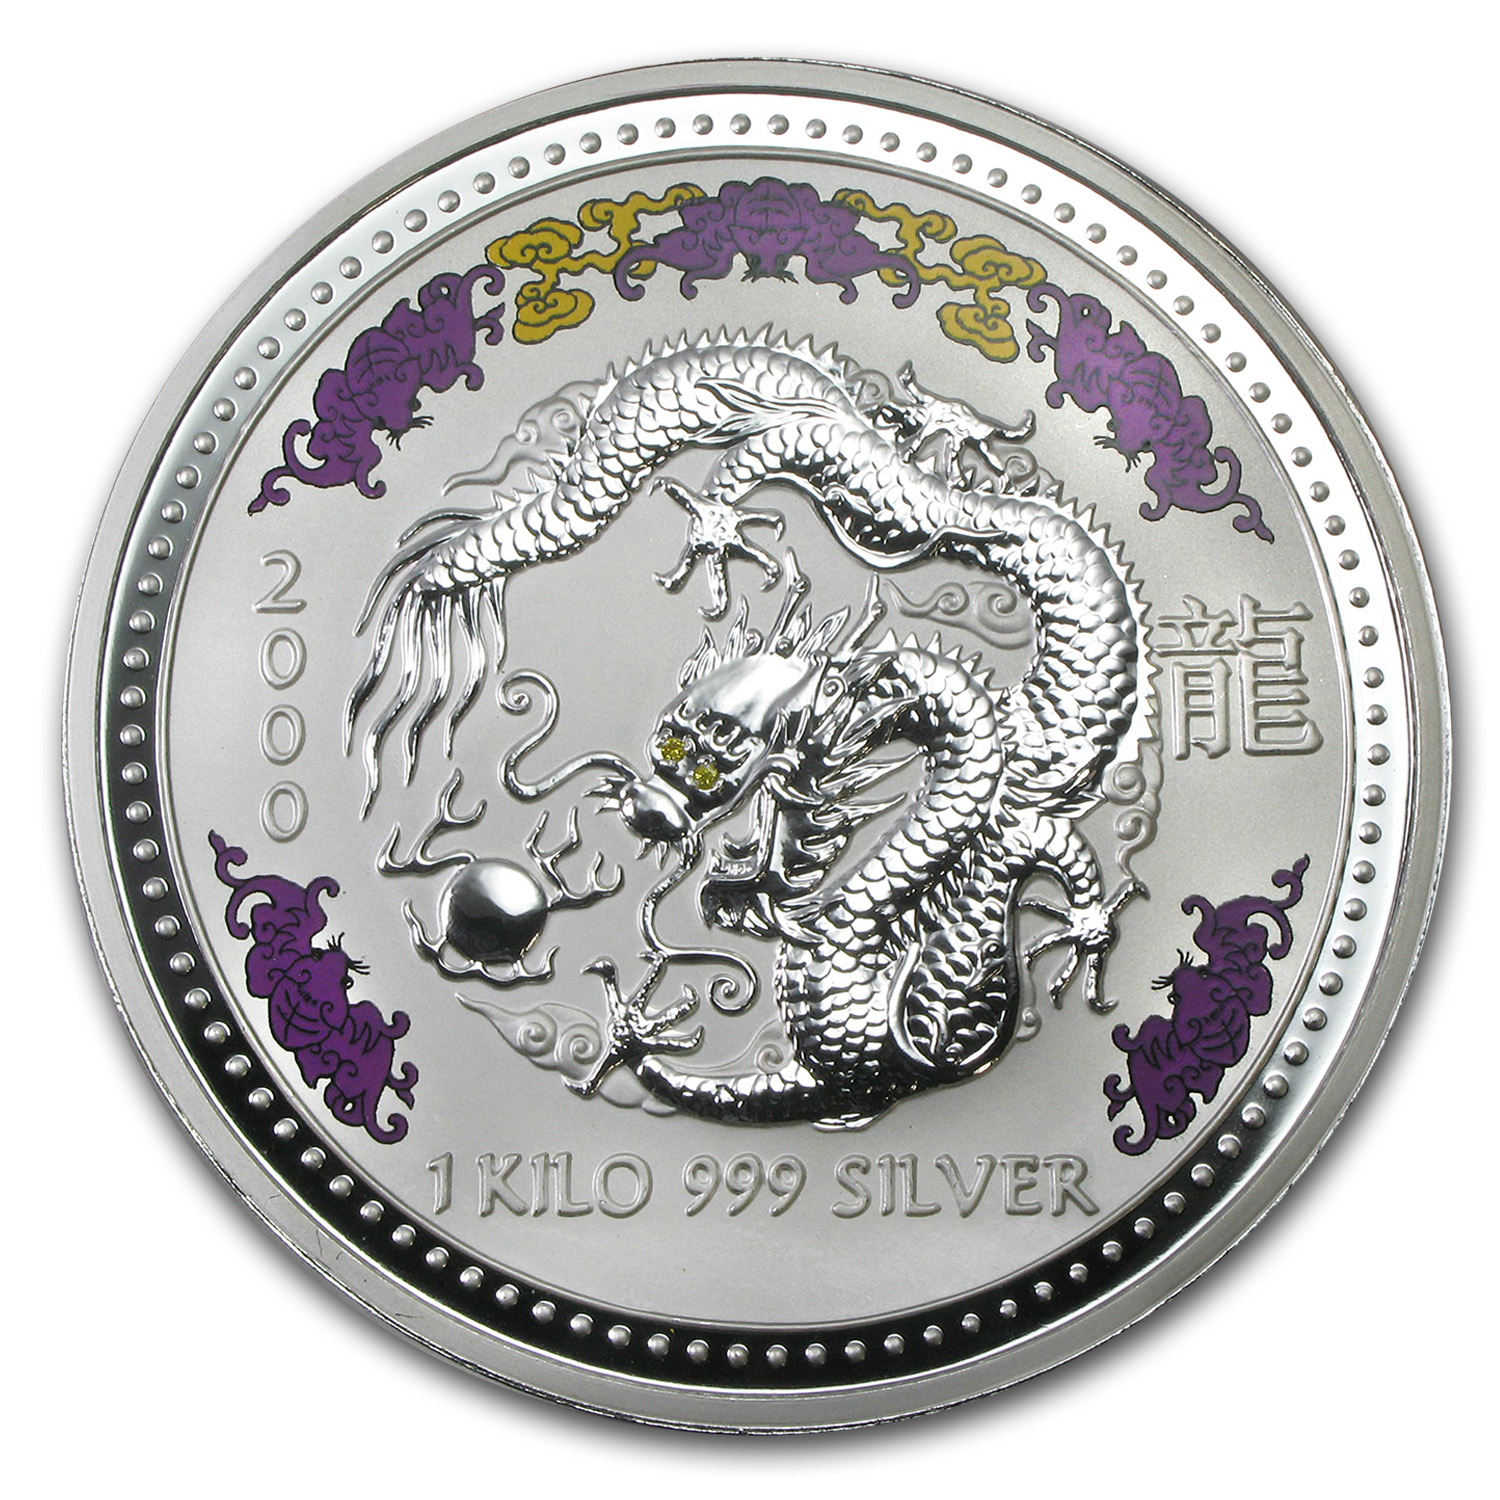 2000 Australia 1 kilo Silver Year of the Dragon BU (Diamond Eye)